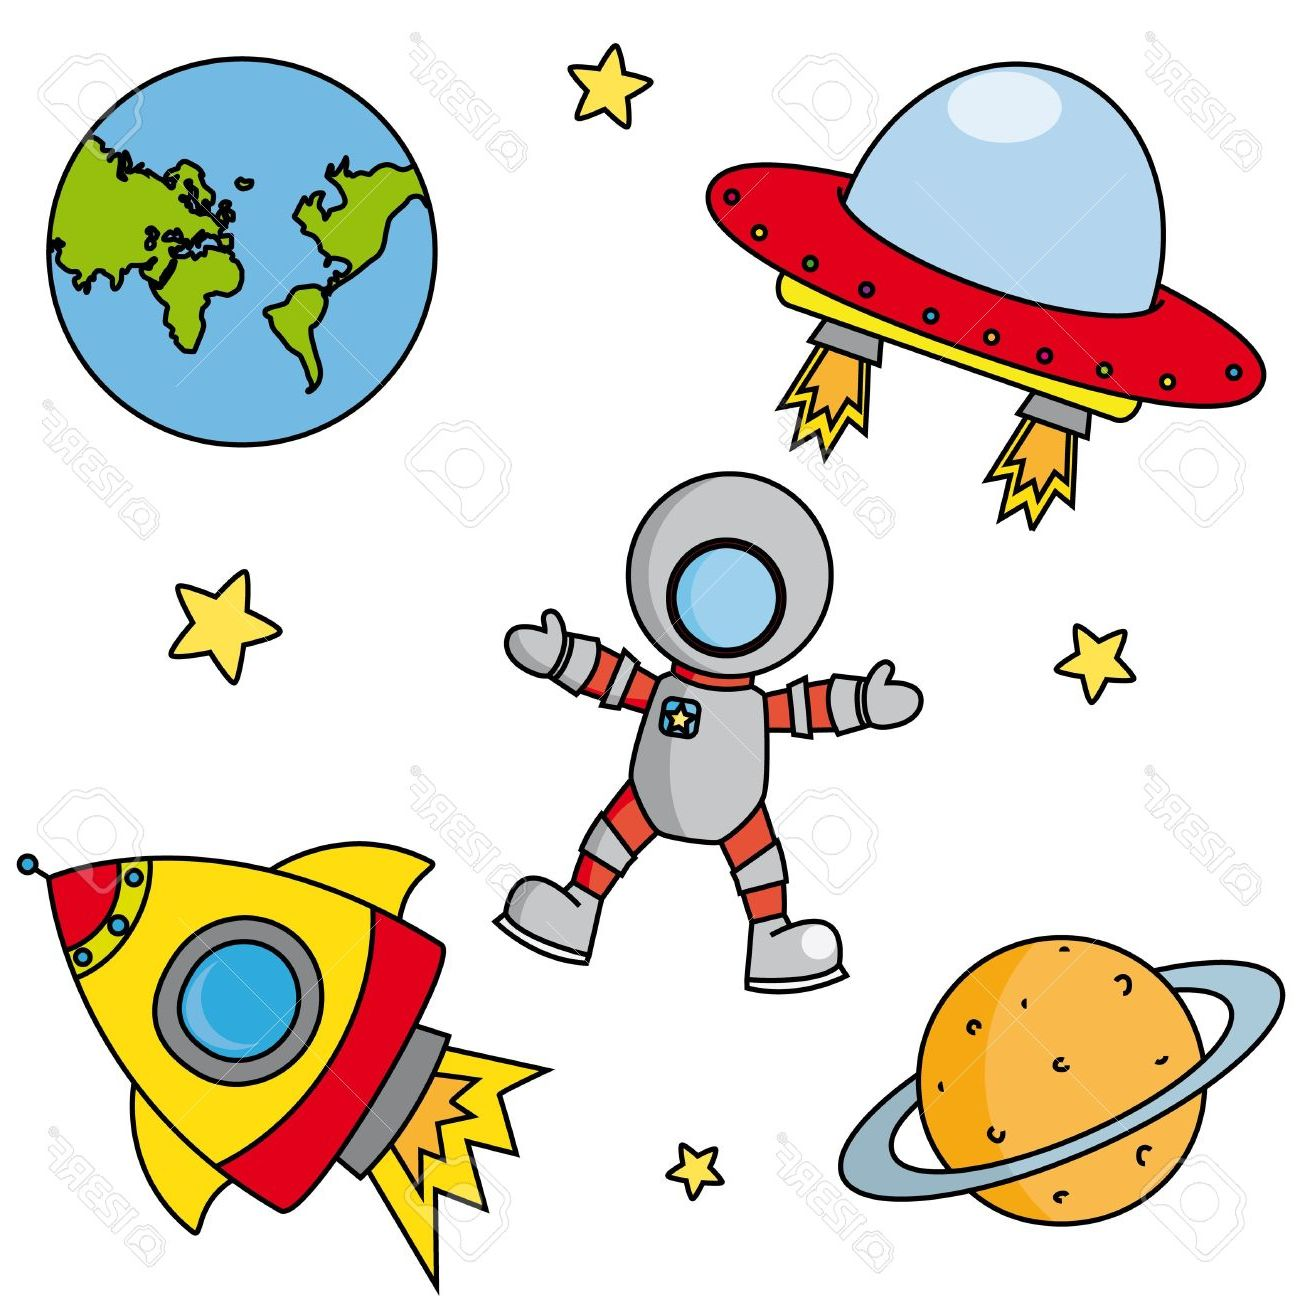 astronomy clipart at getdrawings com free for personal use rh getdrawings com astronomy clipart free telescope